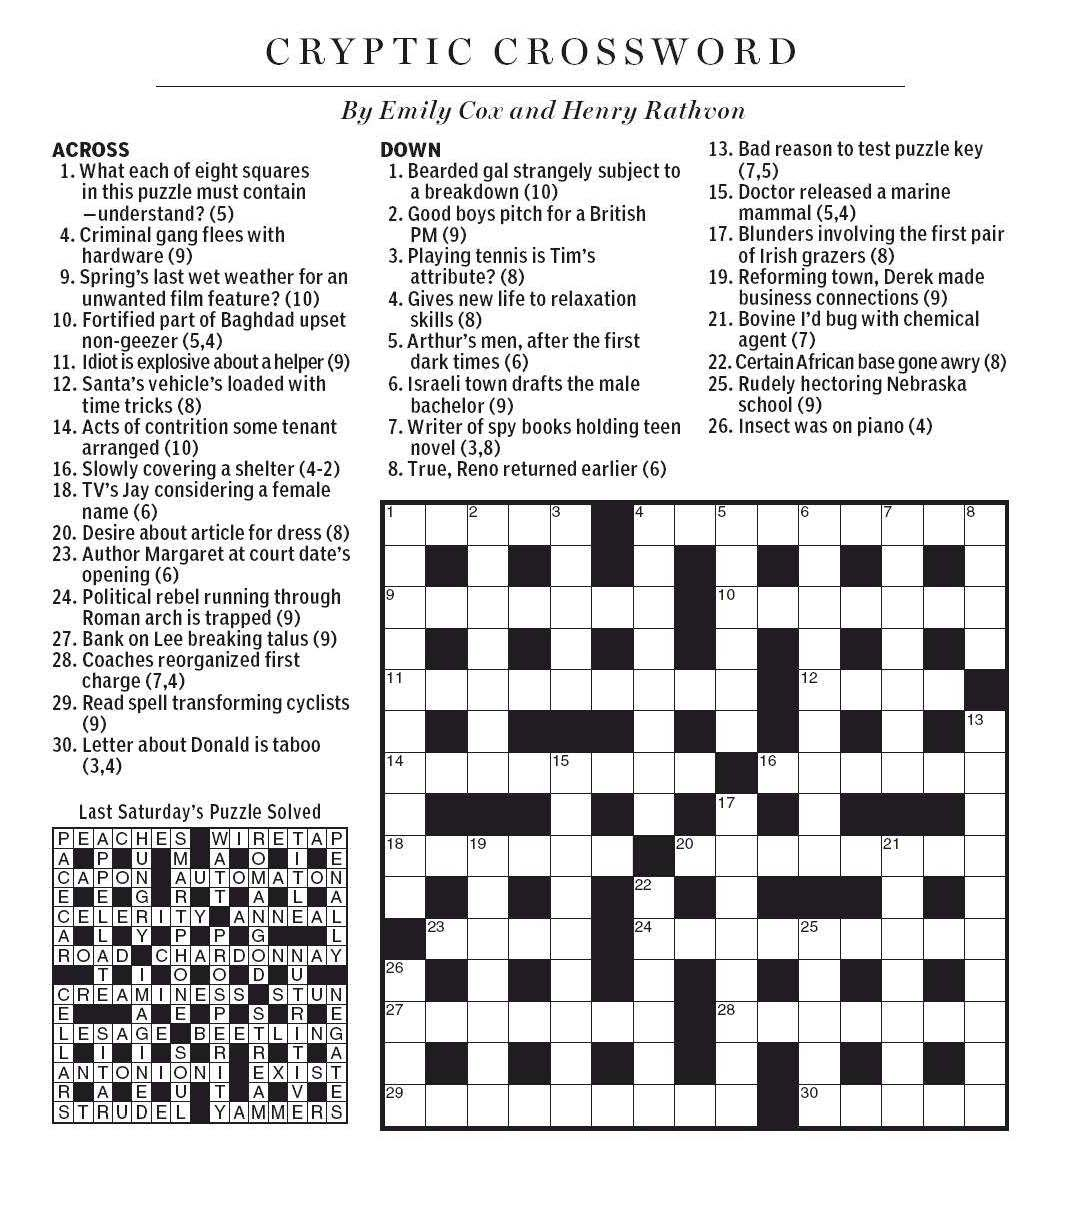 National post cryptic crossword forum saturday december 8 2012 introduction spiritdancerdesigns Images